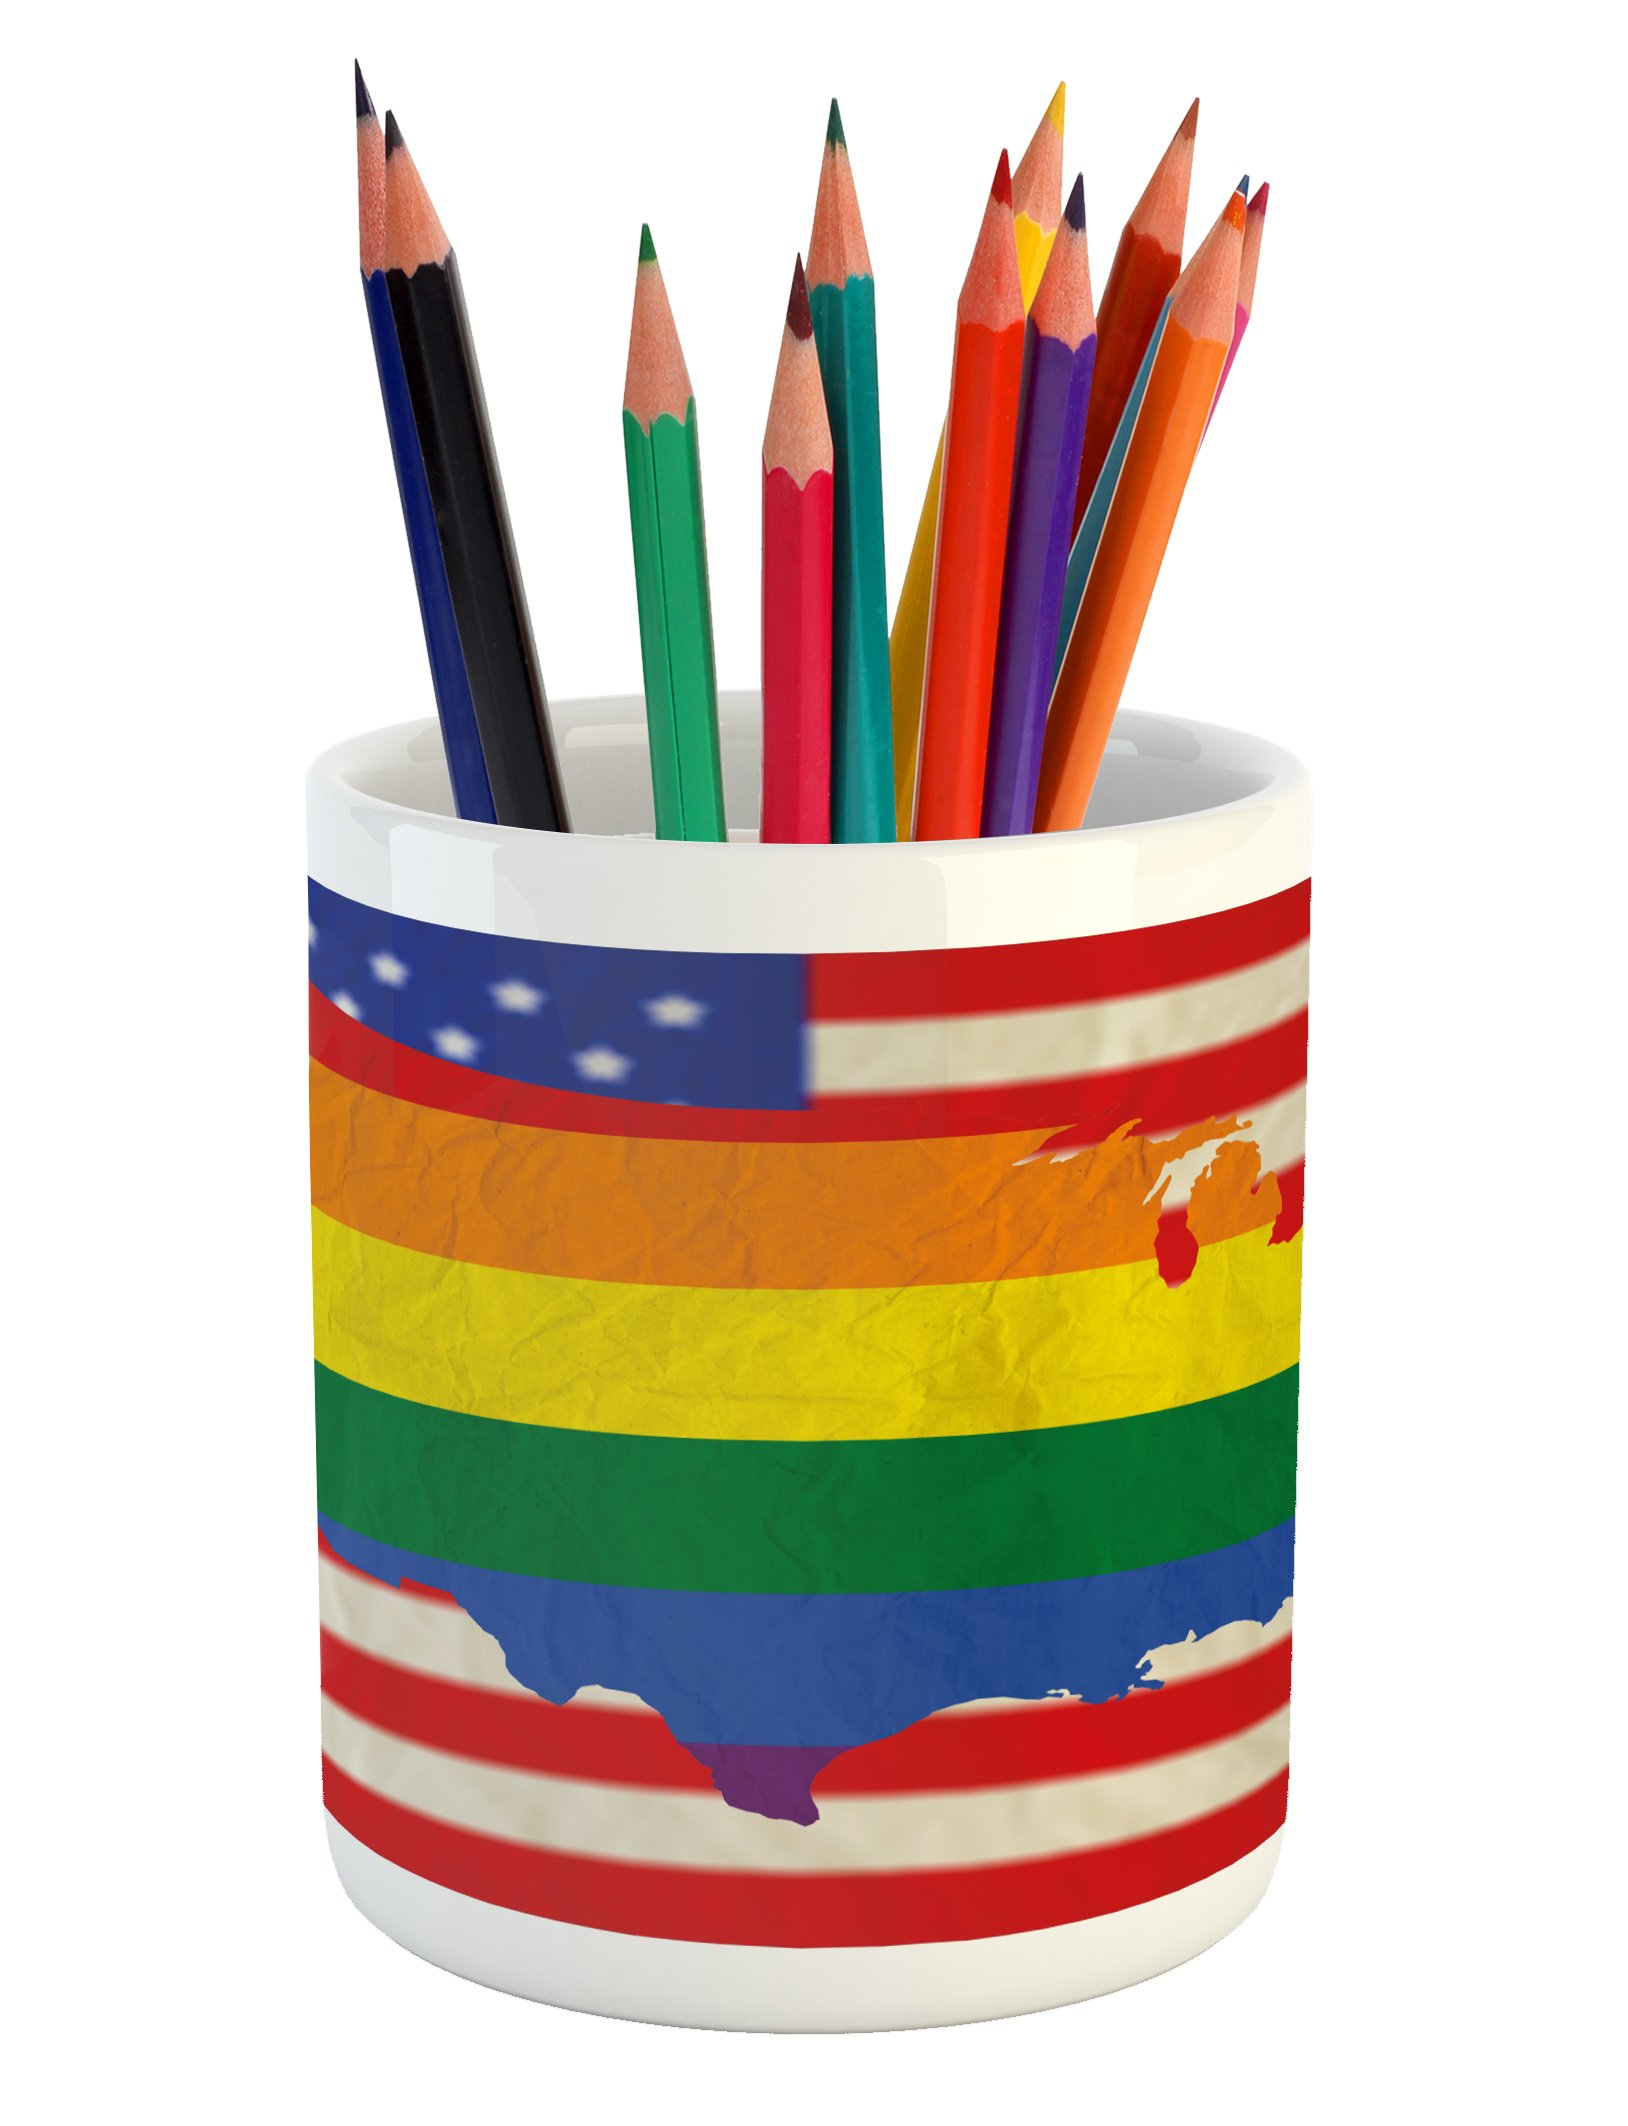 Ambesonne Pride Pencil Pen Holder, USA American Flag with Rainbow Gay Marriage Nationwide Rights and Equality Theme, Printed Ceramic Pencil Pen Holder for Desk Office Accessory, Multicolor